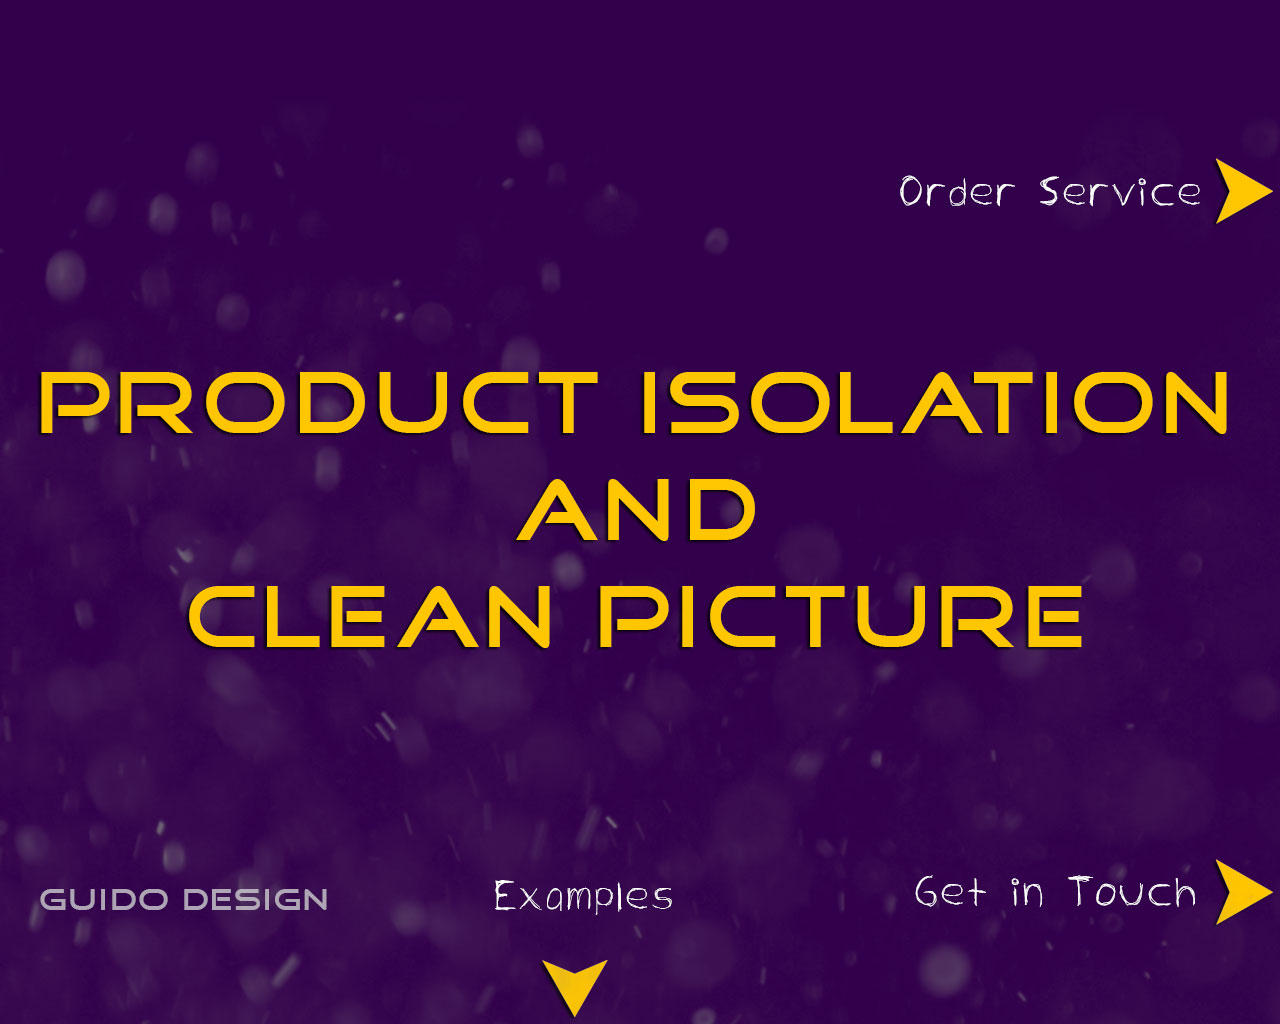 Product Isolation and Clean Picture by GuidoDesign - 66255